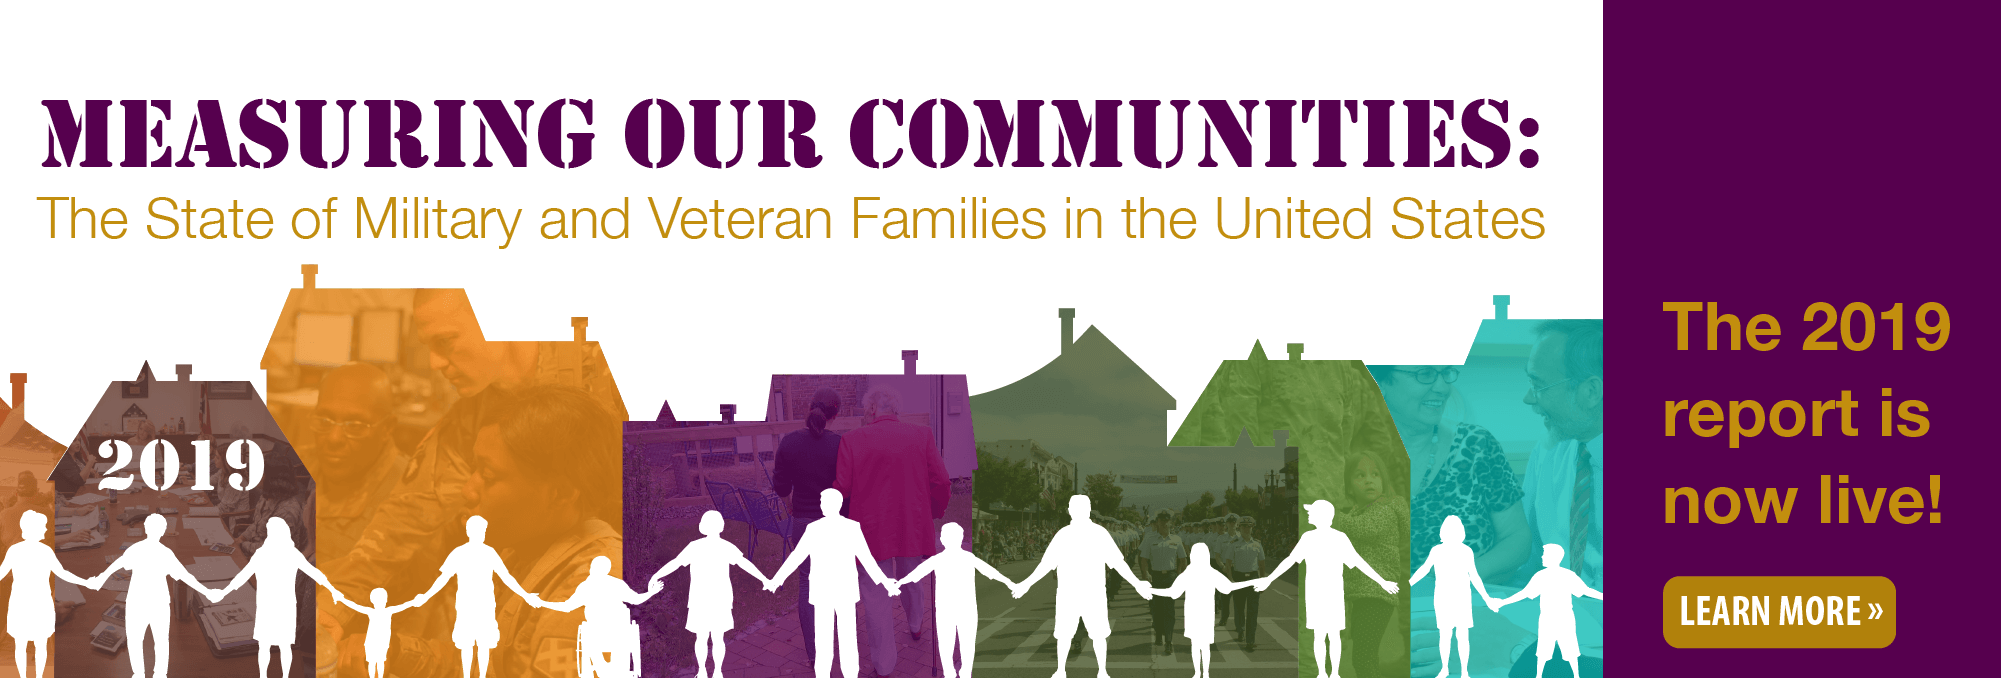 Measuring Our Communities: The State of Military and Veteran Families in the United States 2019 report is live! Learn more